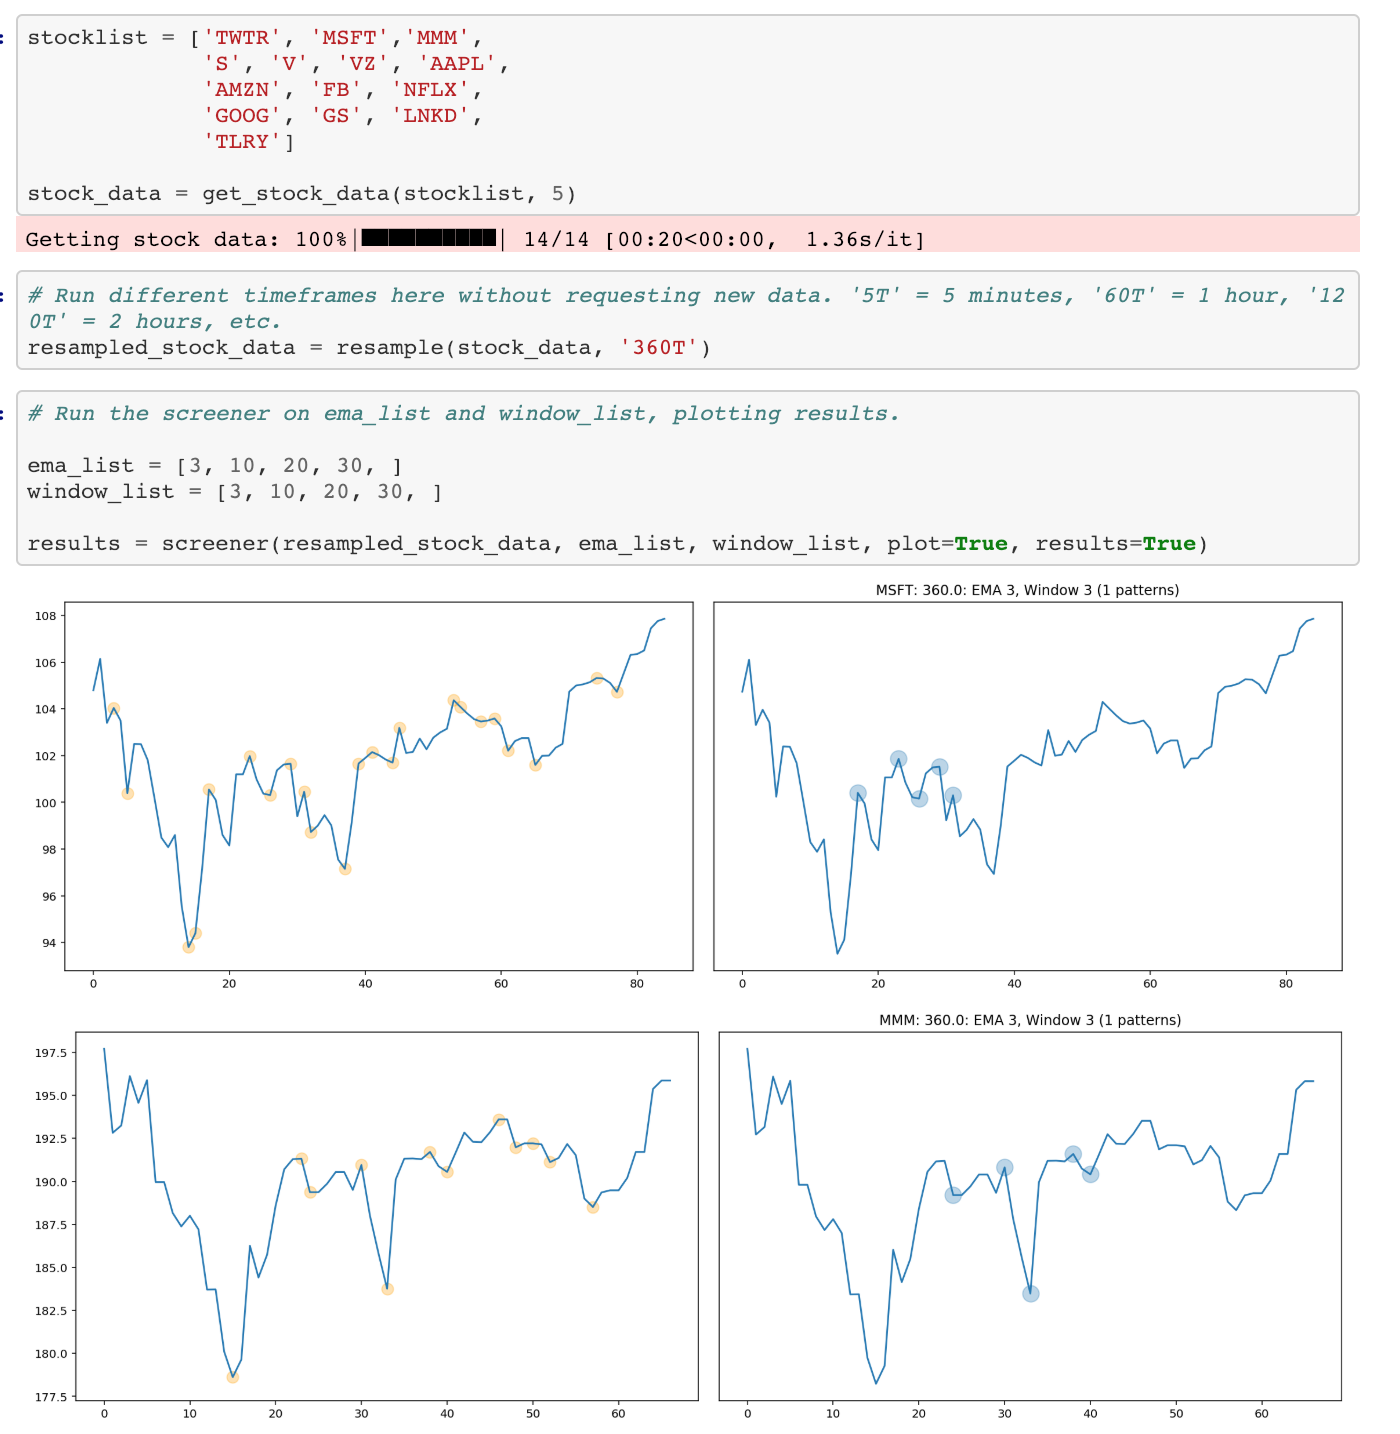 Algorithmically Detecting (and Trading) Technical Chart Patterns